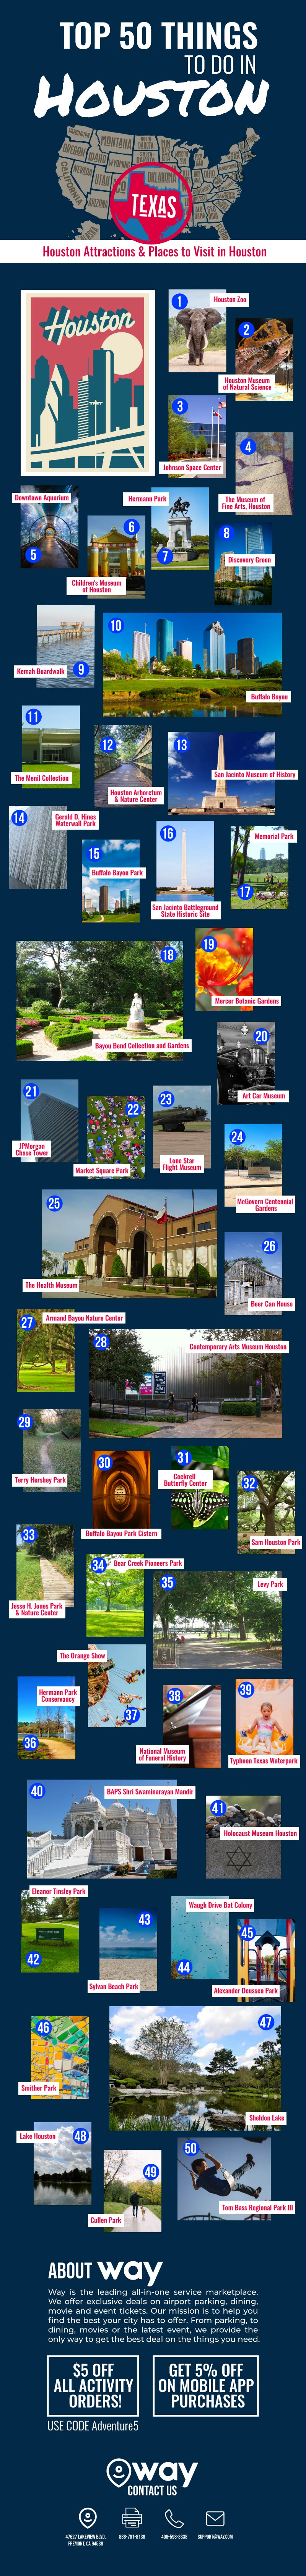 Top-50-Things-to-Do-in-Houston-infographic-plaza